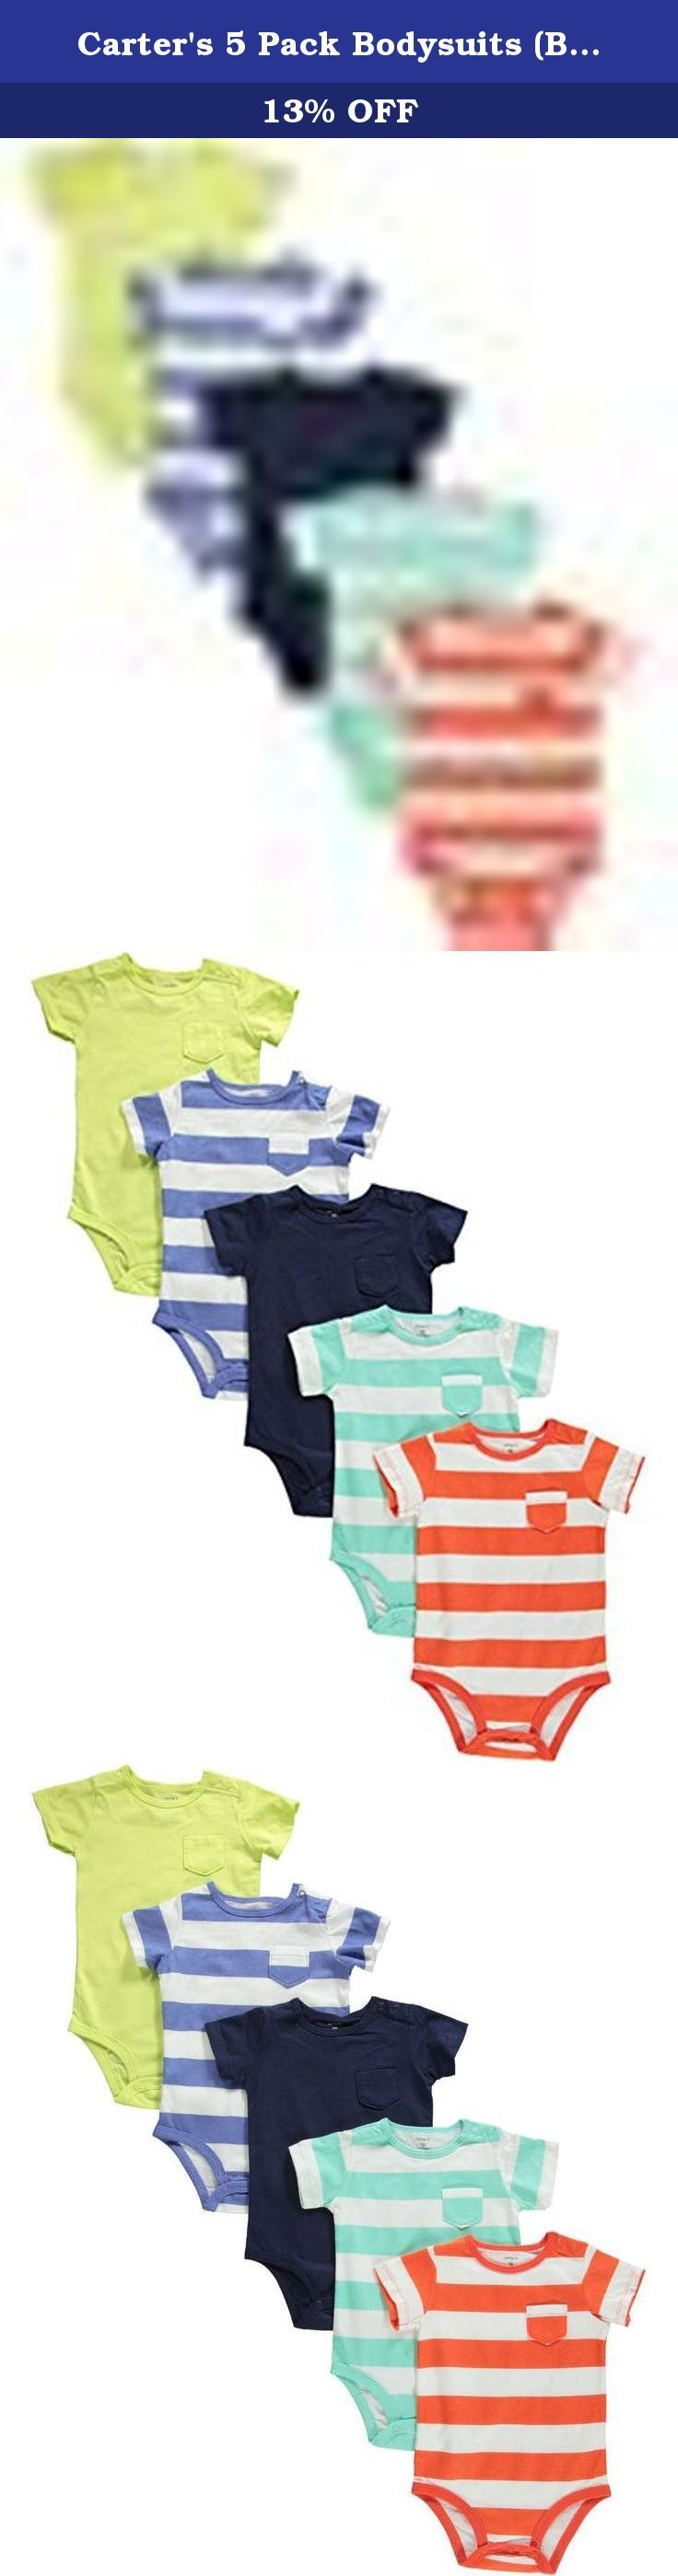 Carter's 5 Pack Bodysuits (Baby) - Stripes/Solids-24 Months. 5 Pack Bodysuits (Baby) - Stripes/Solids Pack includes 5 short-sleeve coordinating bodysuits. Nickel-free snaps on reinforced panel last through all those diaper changes. Expandable shoulders slip easily over little ears. Zoom in to see pocket details and bold stripes. Features: Carter's is the leading brand of children's clothing, gifts and accessories in America, selling more than 10 products for every child born in the U.S....